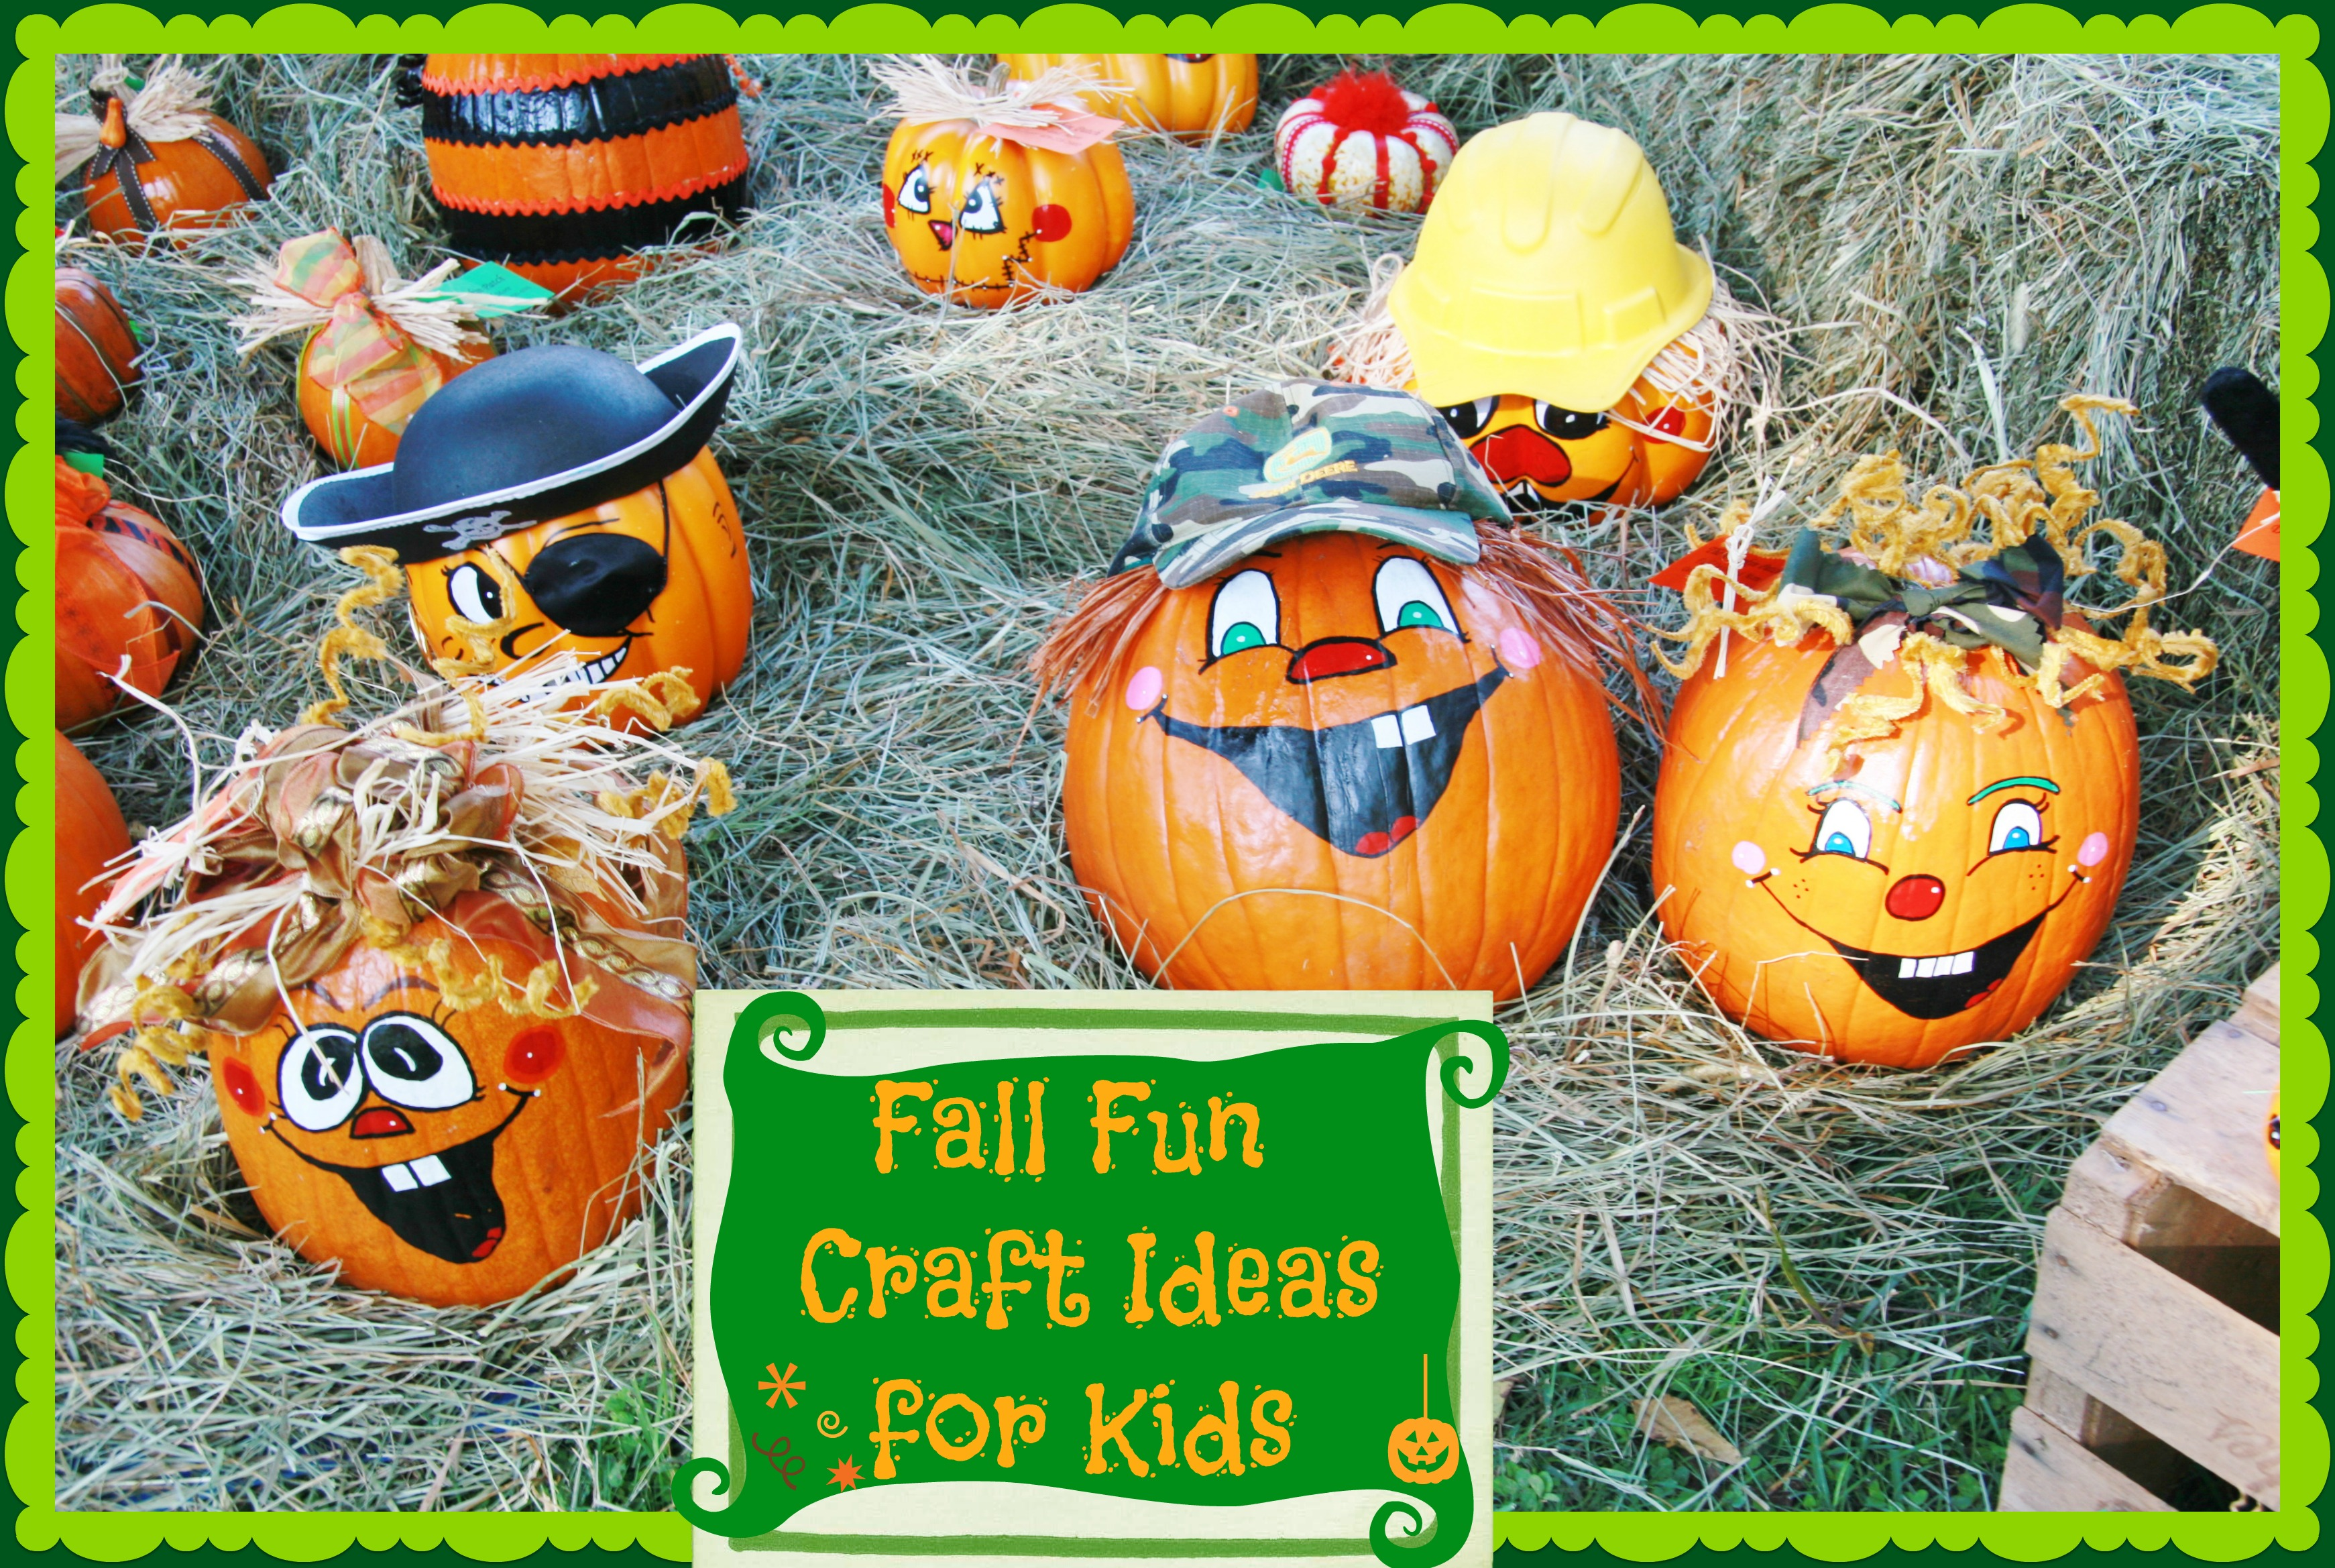 Simple fall fun crafts for kids for Fall ideas crafts